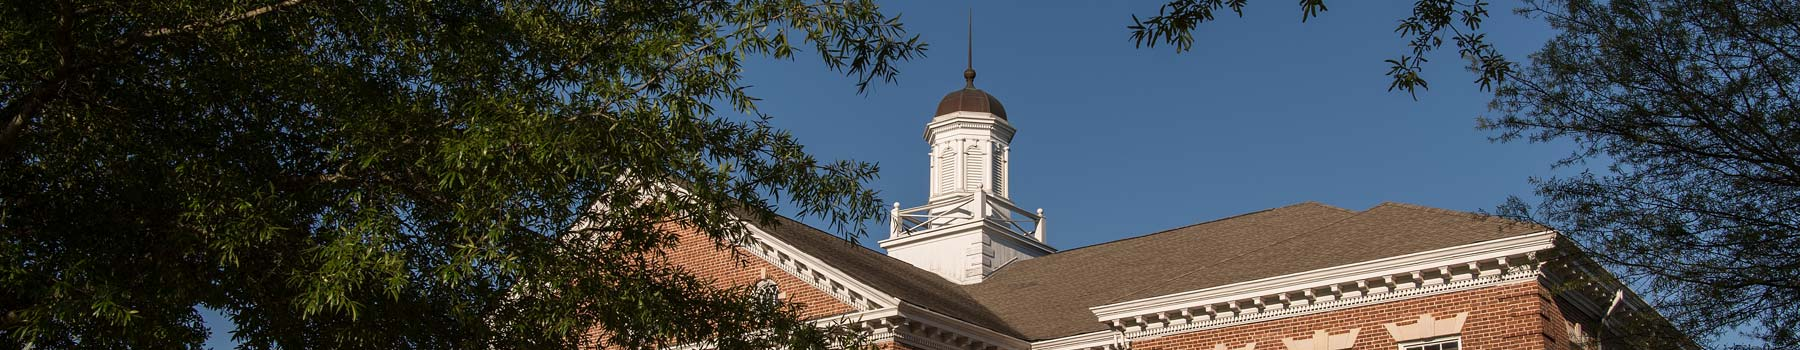 Claflin chapel spire and blue skies